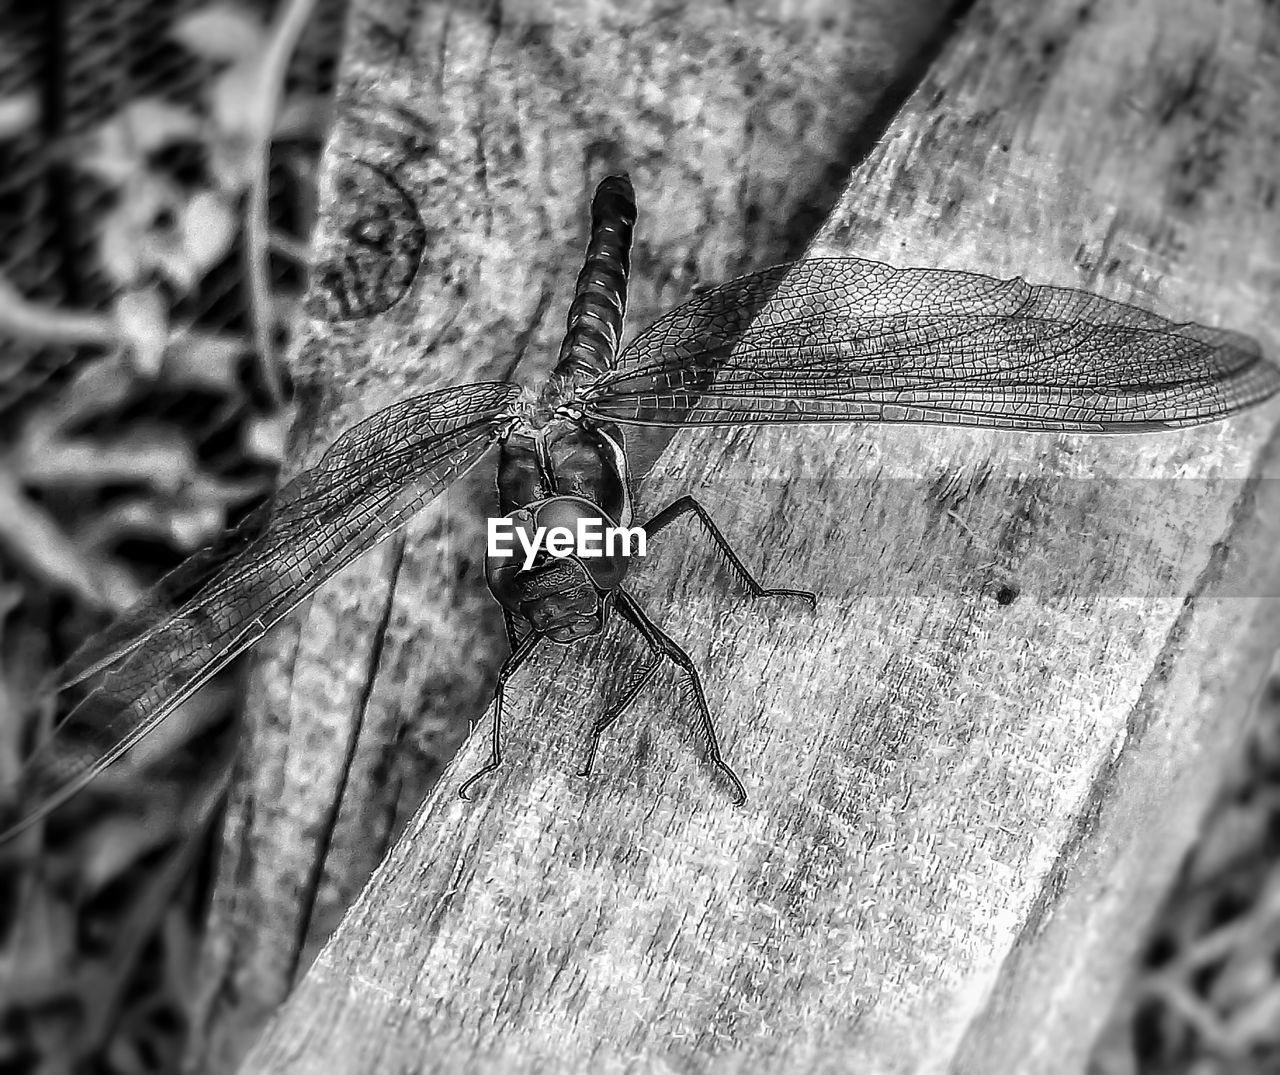 invertebrate, insect, animal themes, one animal, animal, animals in the wild, animal wildlife, close-up, wood - material, no people, day, selective focus, nature, focus on foreground, outdoors, animal wing, dragonfly, animal body part, tree, textured